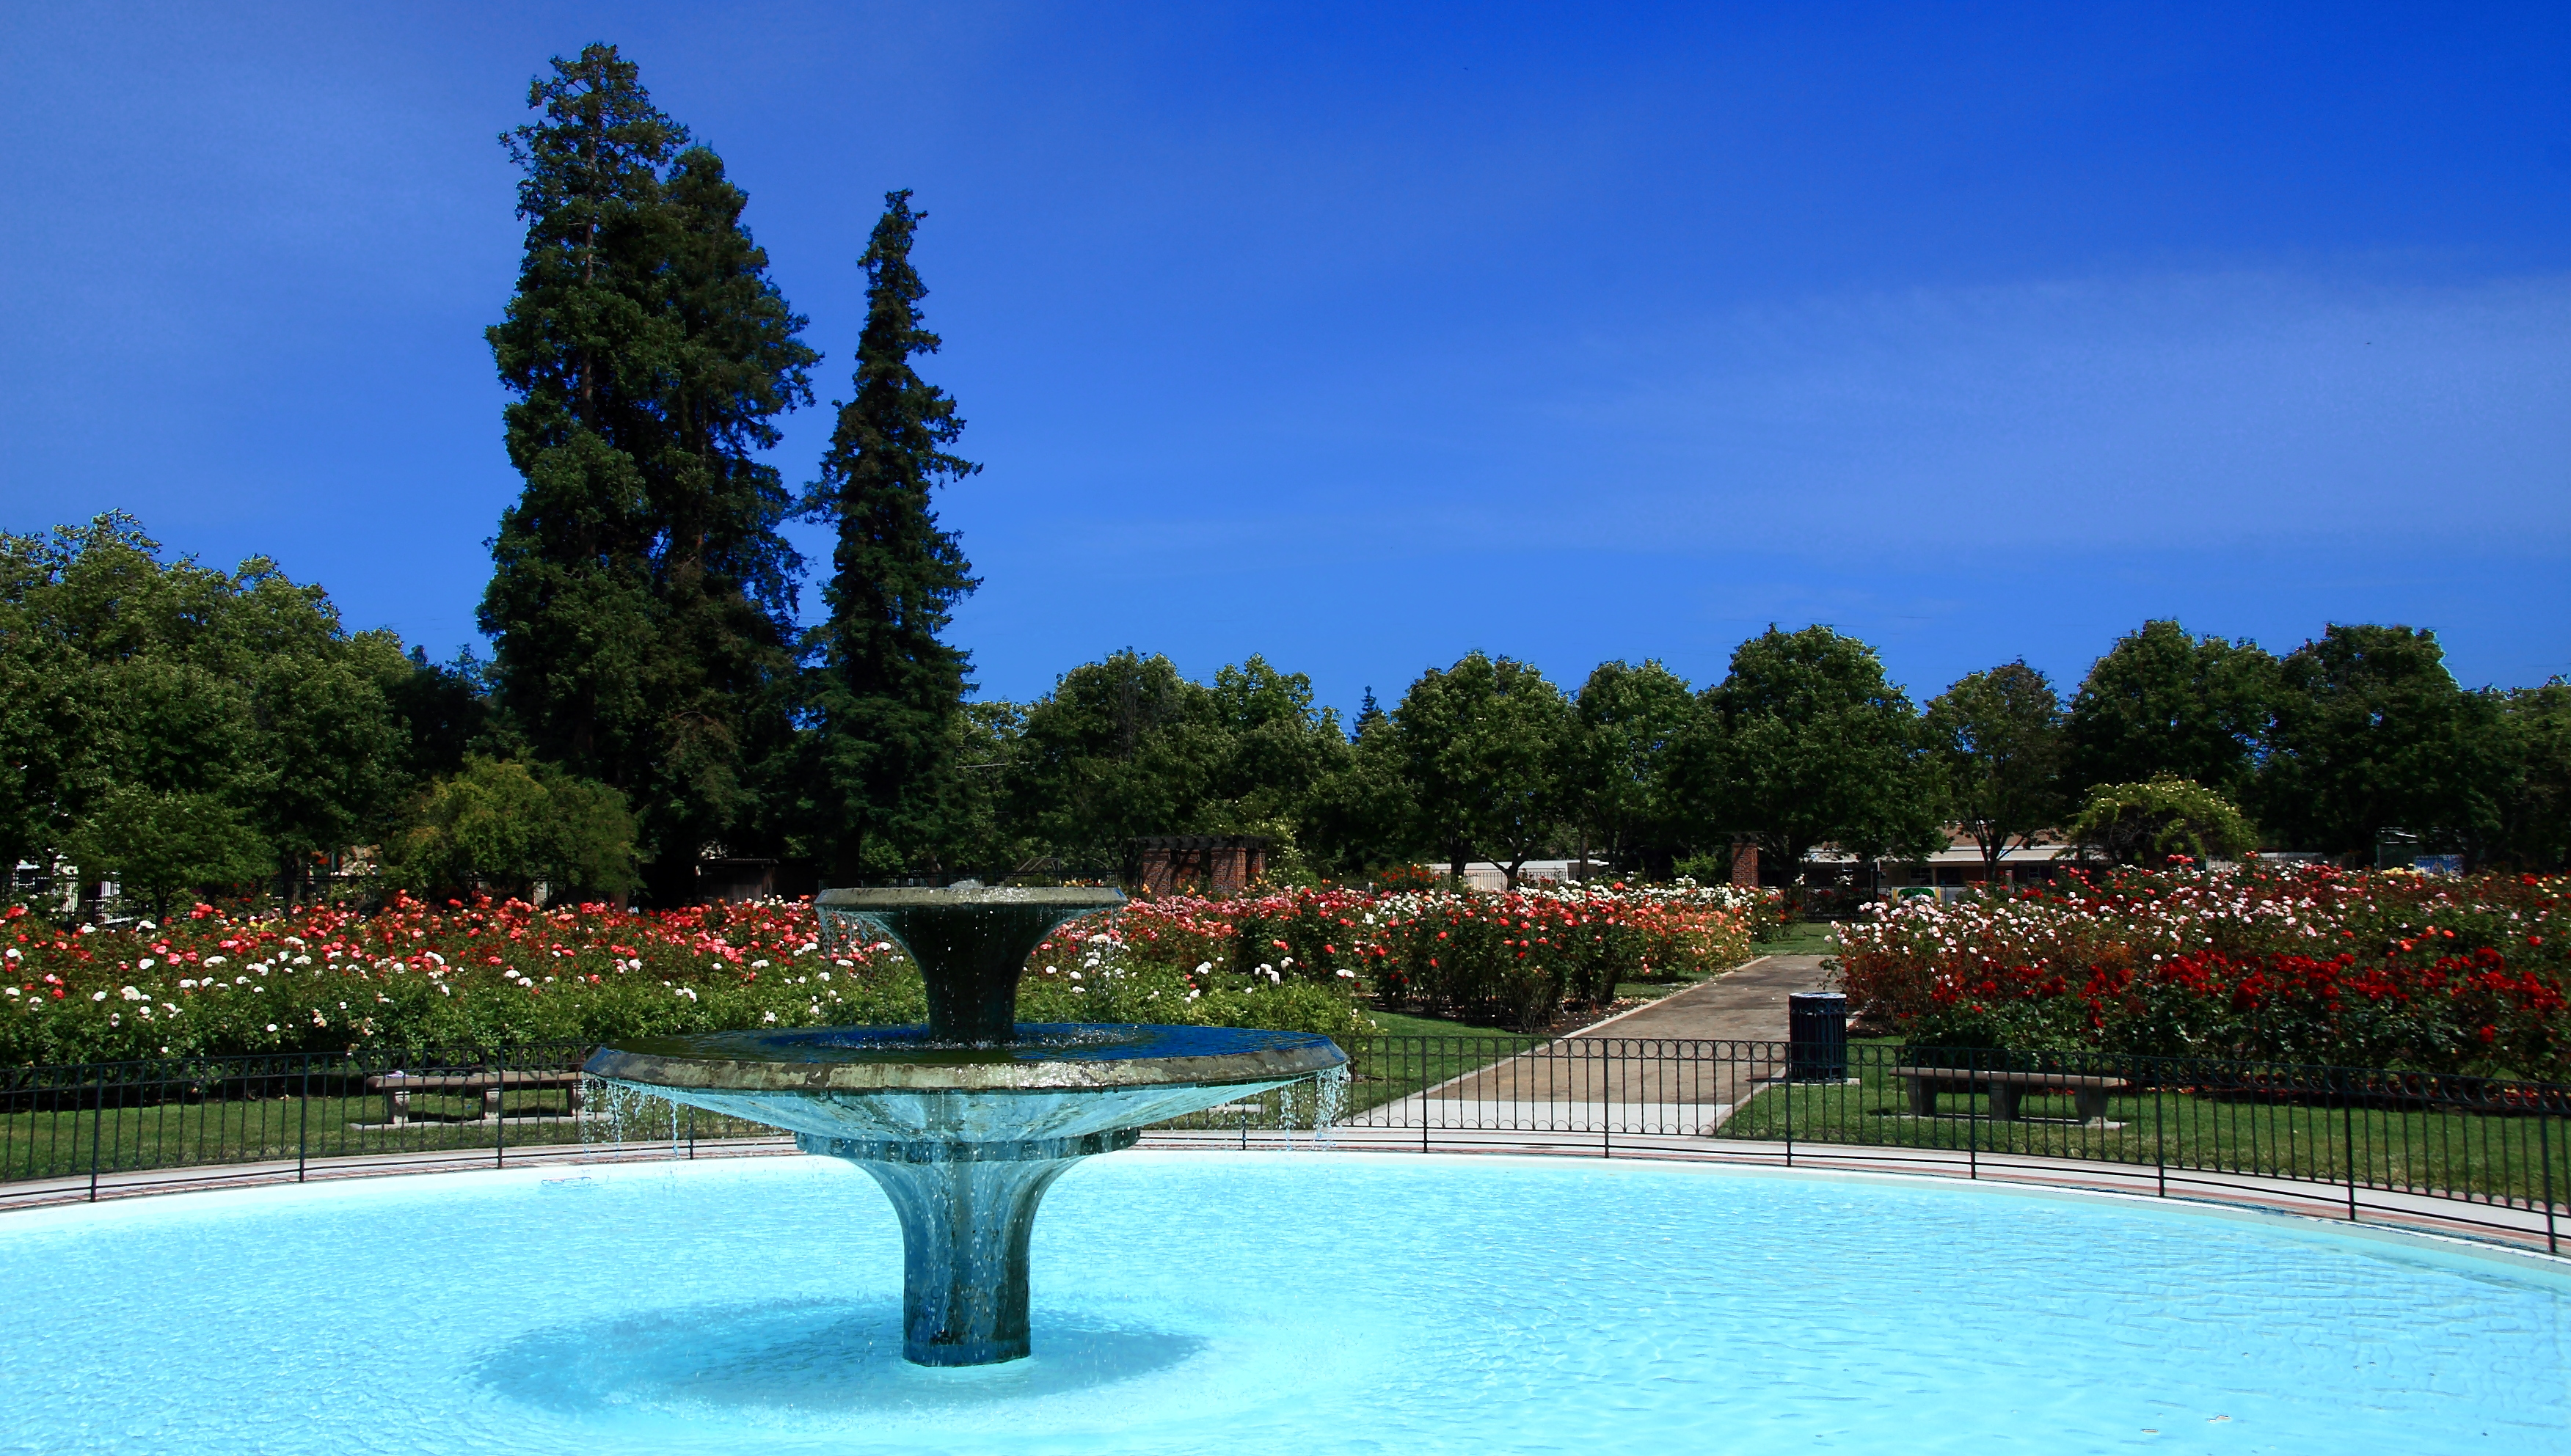 A shot of the fountain in the middle of the Rose Garden.